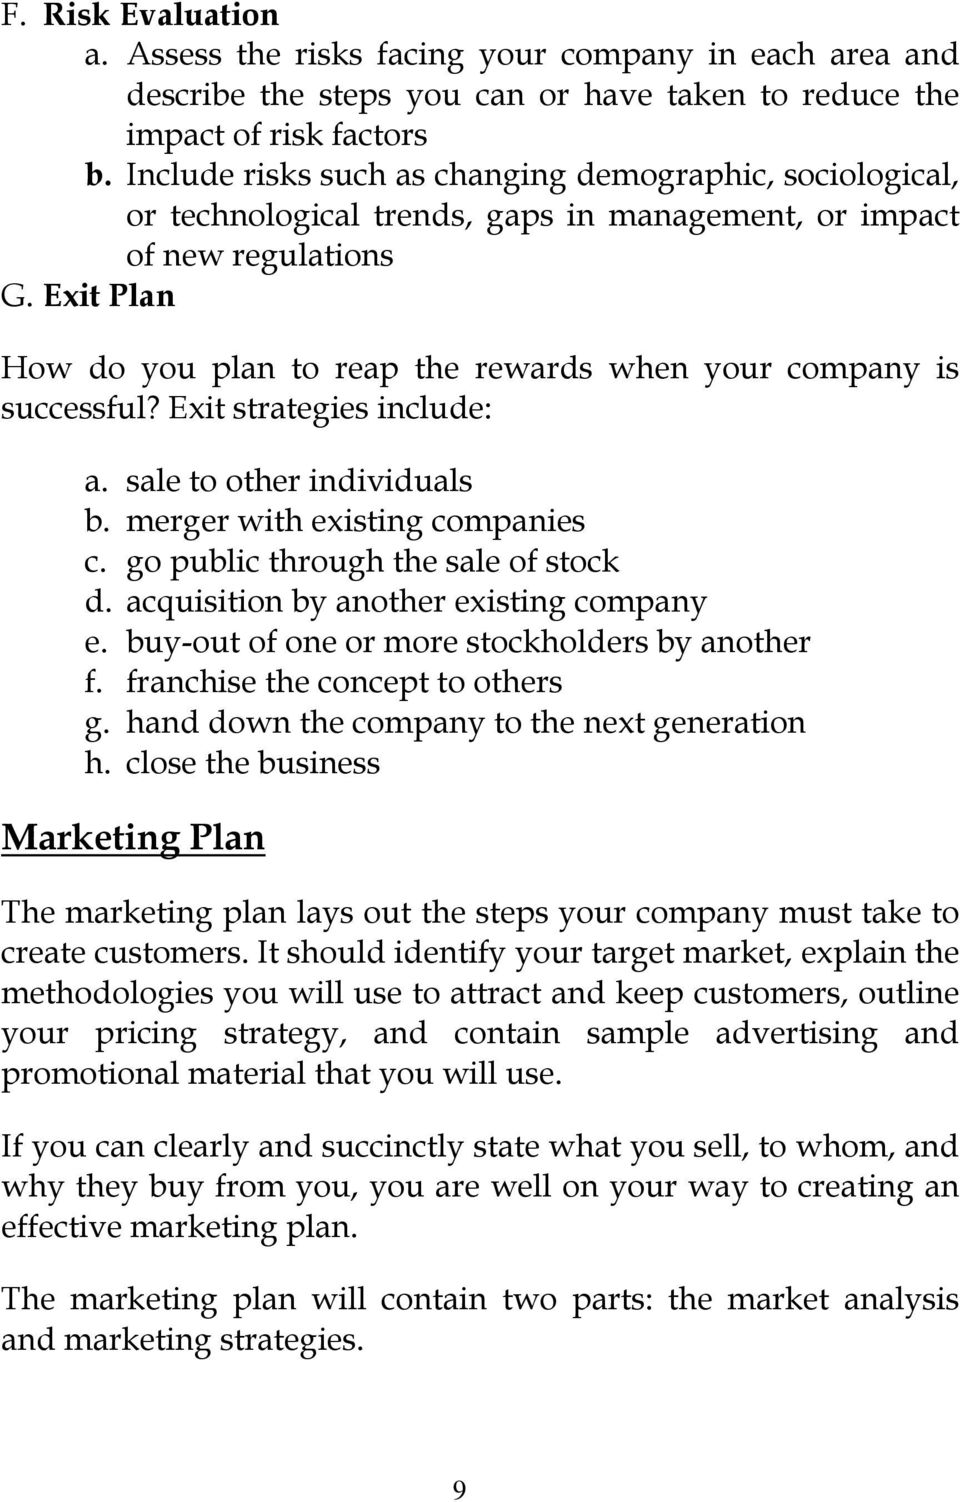 Exit Plan How do you plan to reap the rewards when your company is successful? Exit strategies include: a. sale to other individuals b. merger with existing companies c.